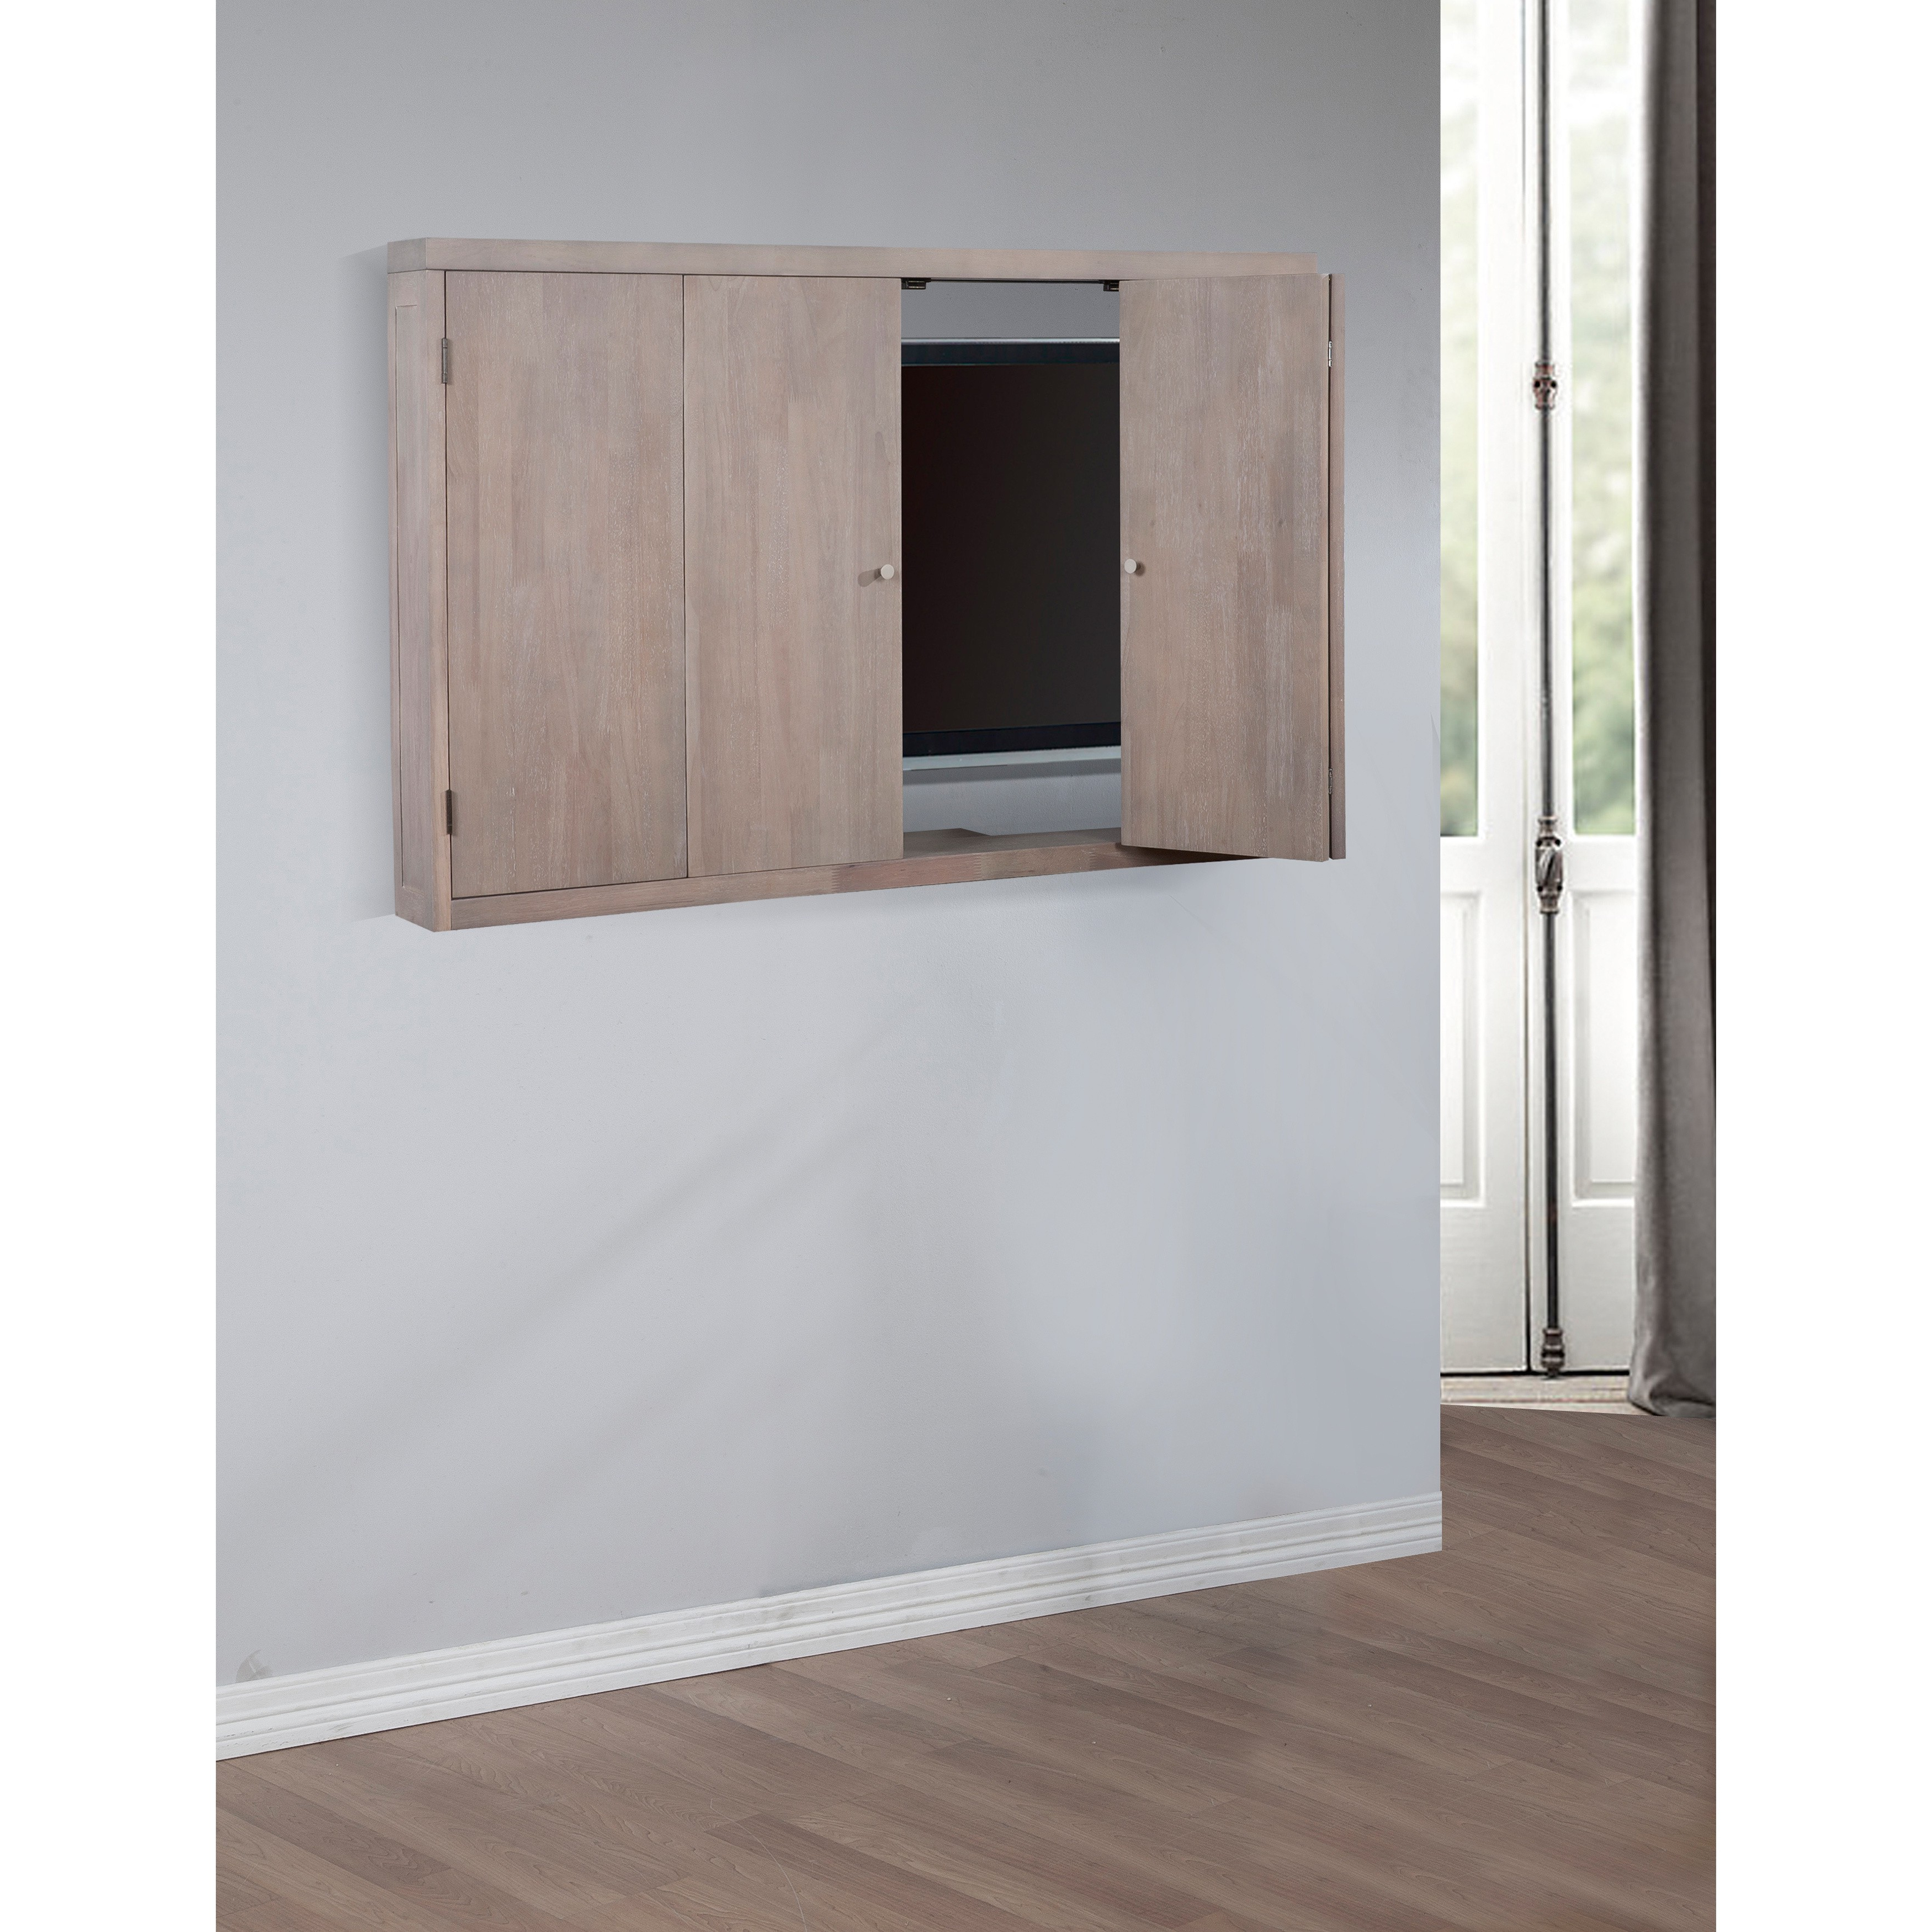 Wall Mounted Tv Cabinets For Flat Screens Throughout Latest Hide Tv Cabinets For Flat Screens – Image Cabinets And Shower Mandra (View 15 of 20)